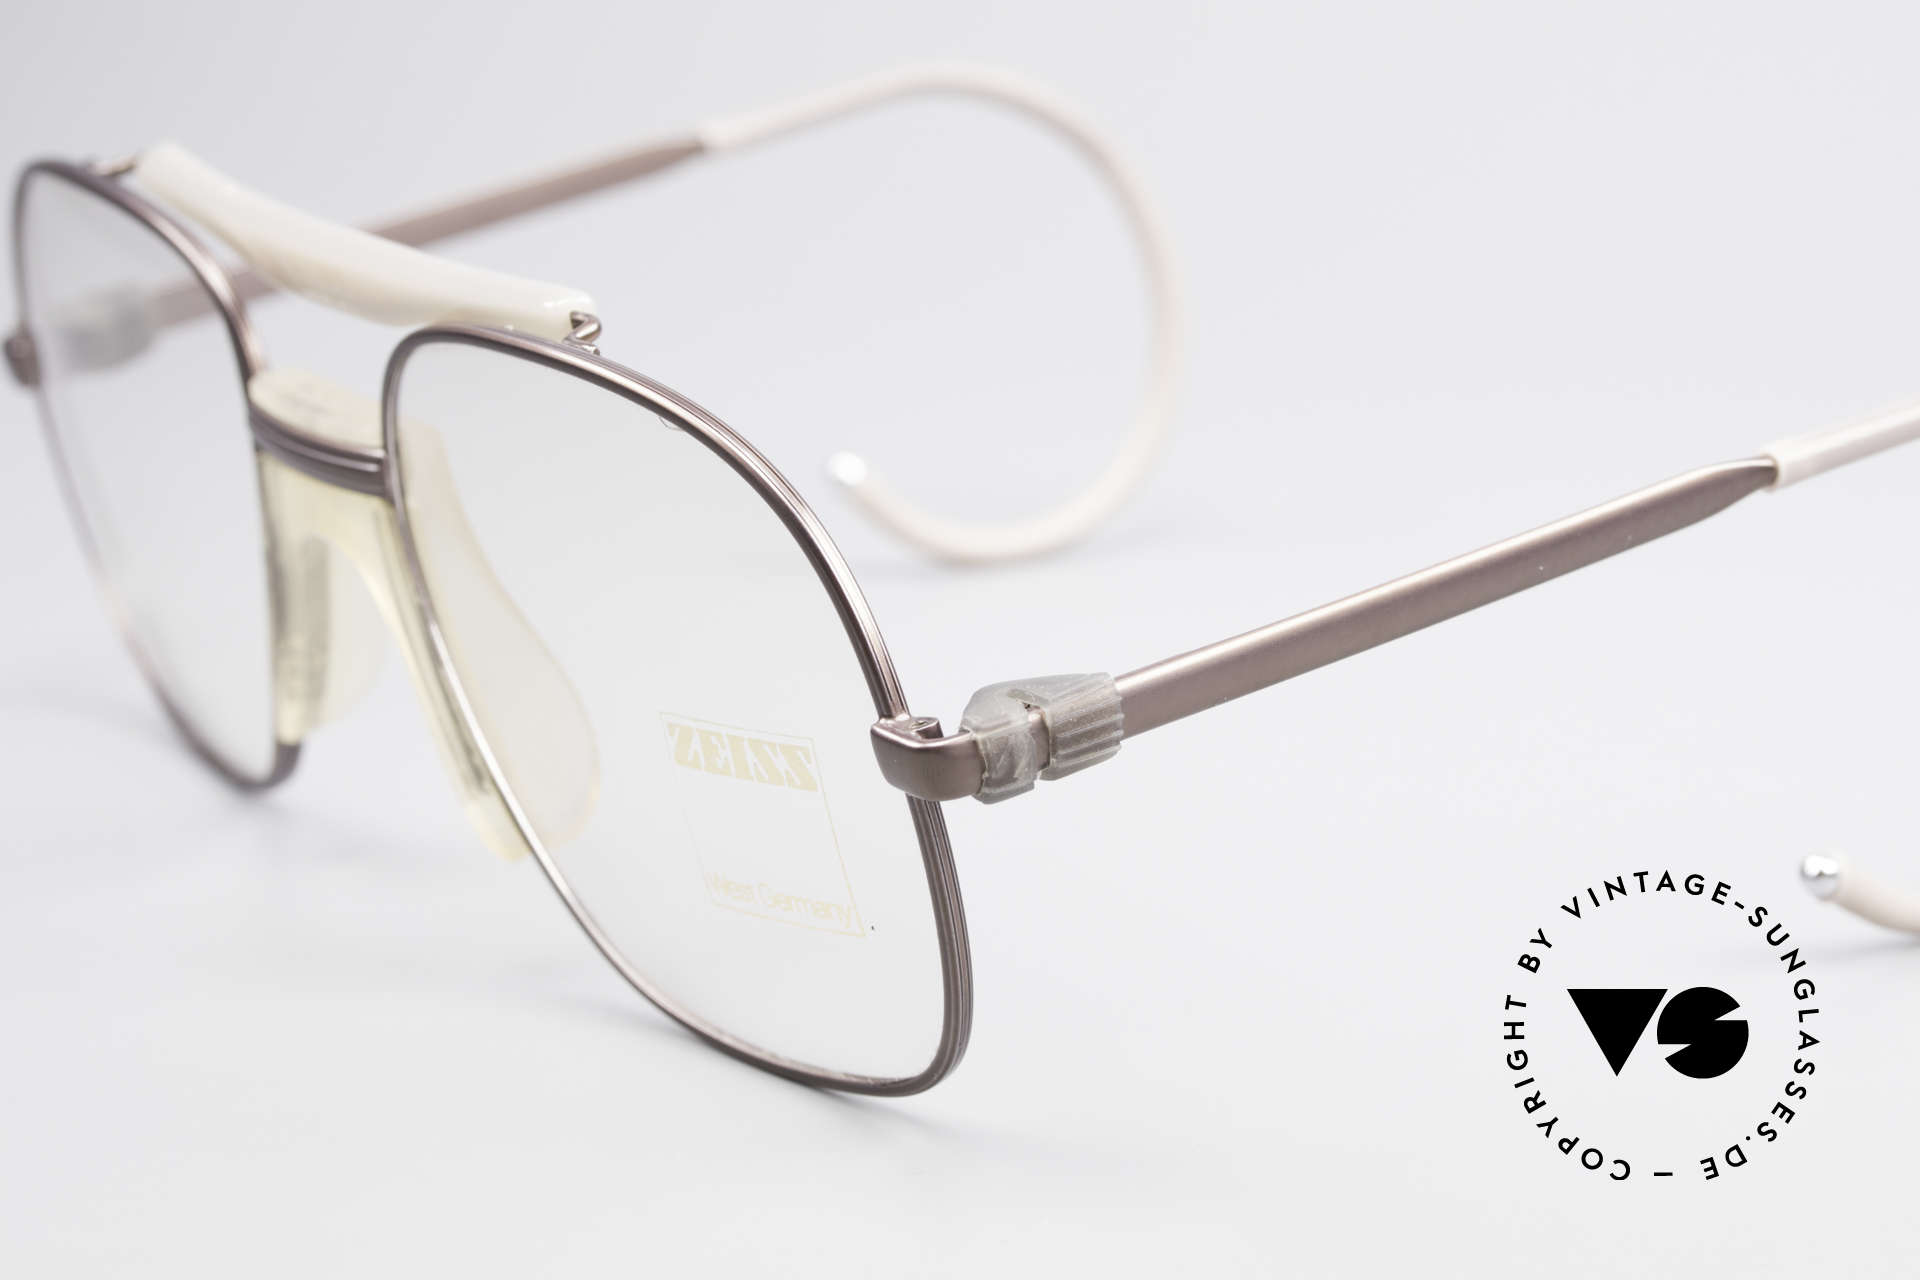 Zeiss 7037 80's Old School Sports Glasses, headstrong frame design & coloring (Check the pics!), Made for Men